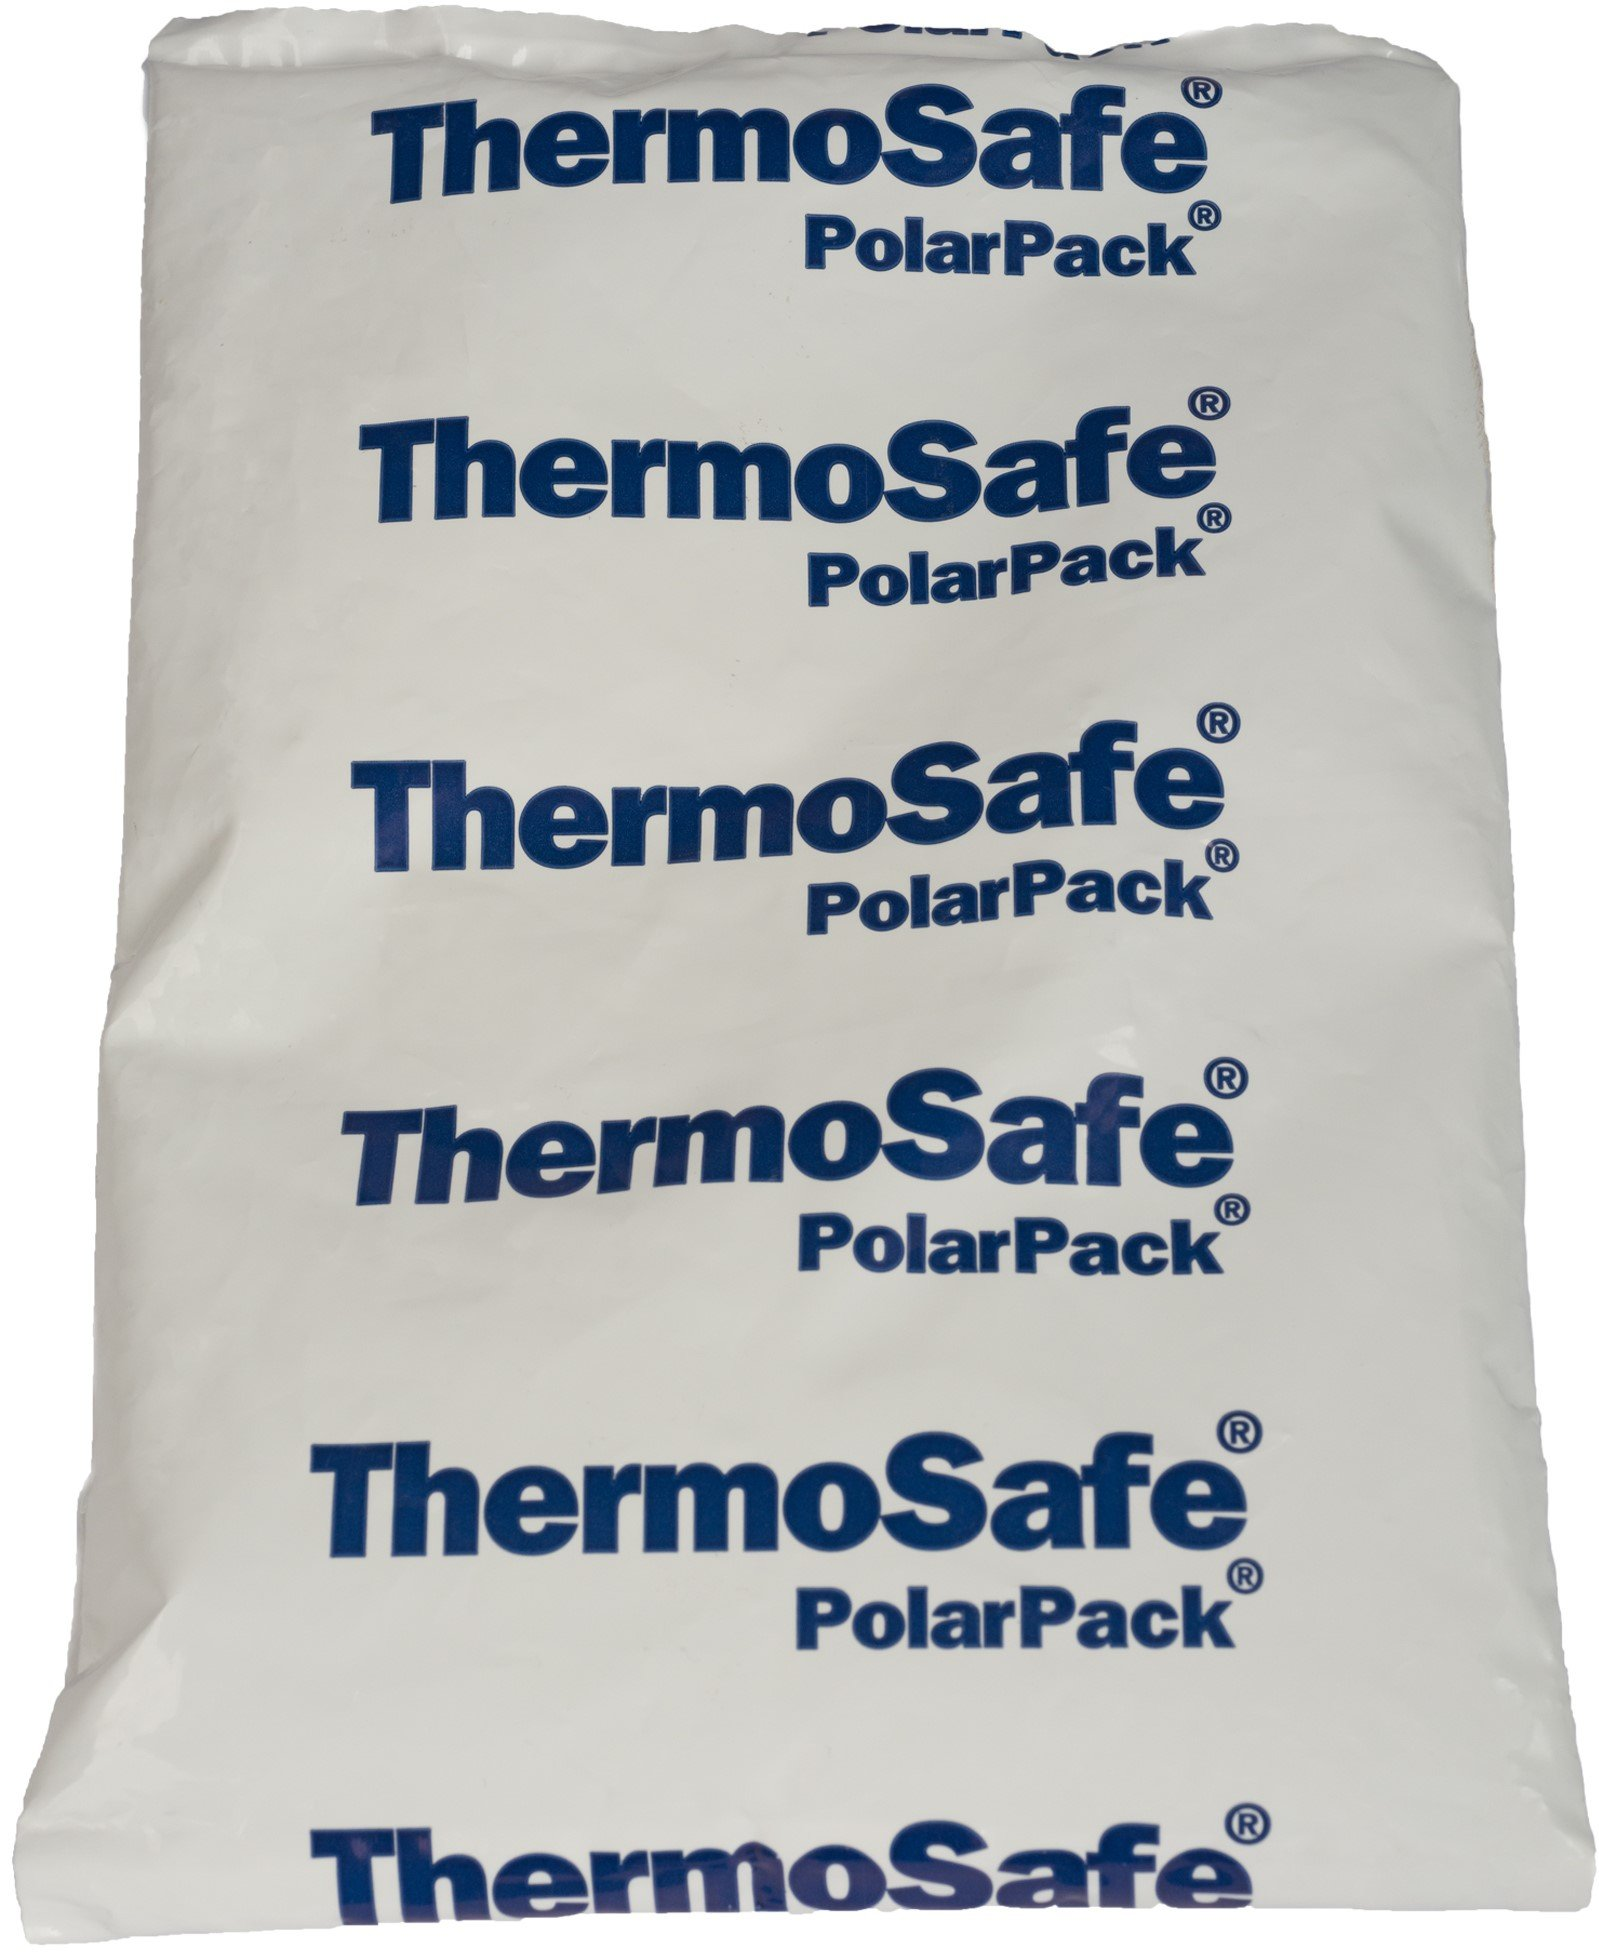 Sonoco Thermosafe PP48 PolarPack Refrigerant Gel Packs (Case of 12)